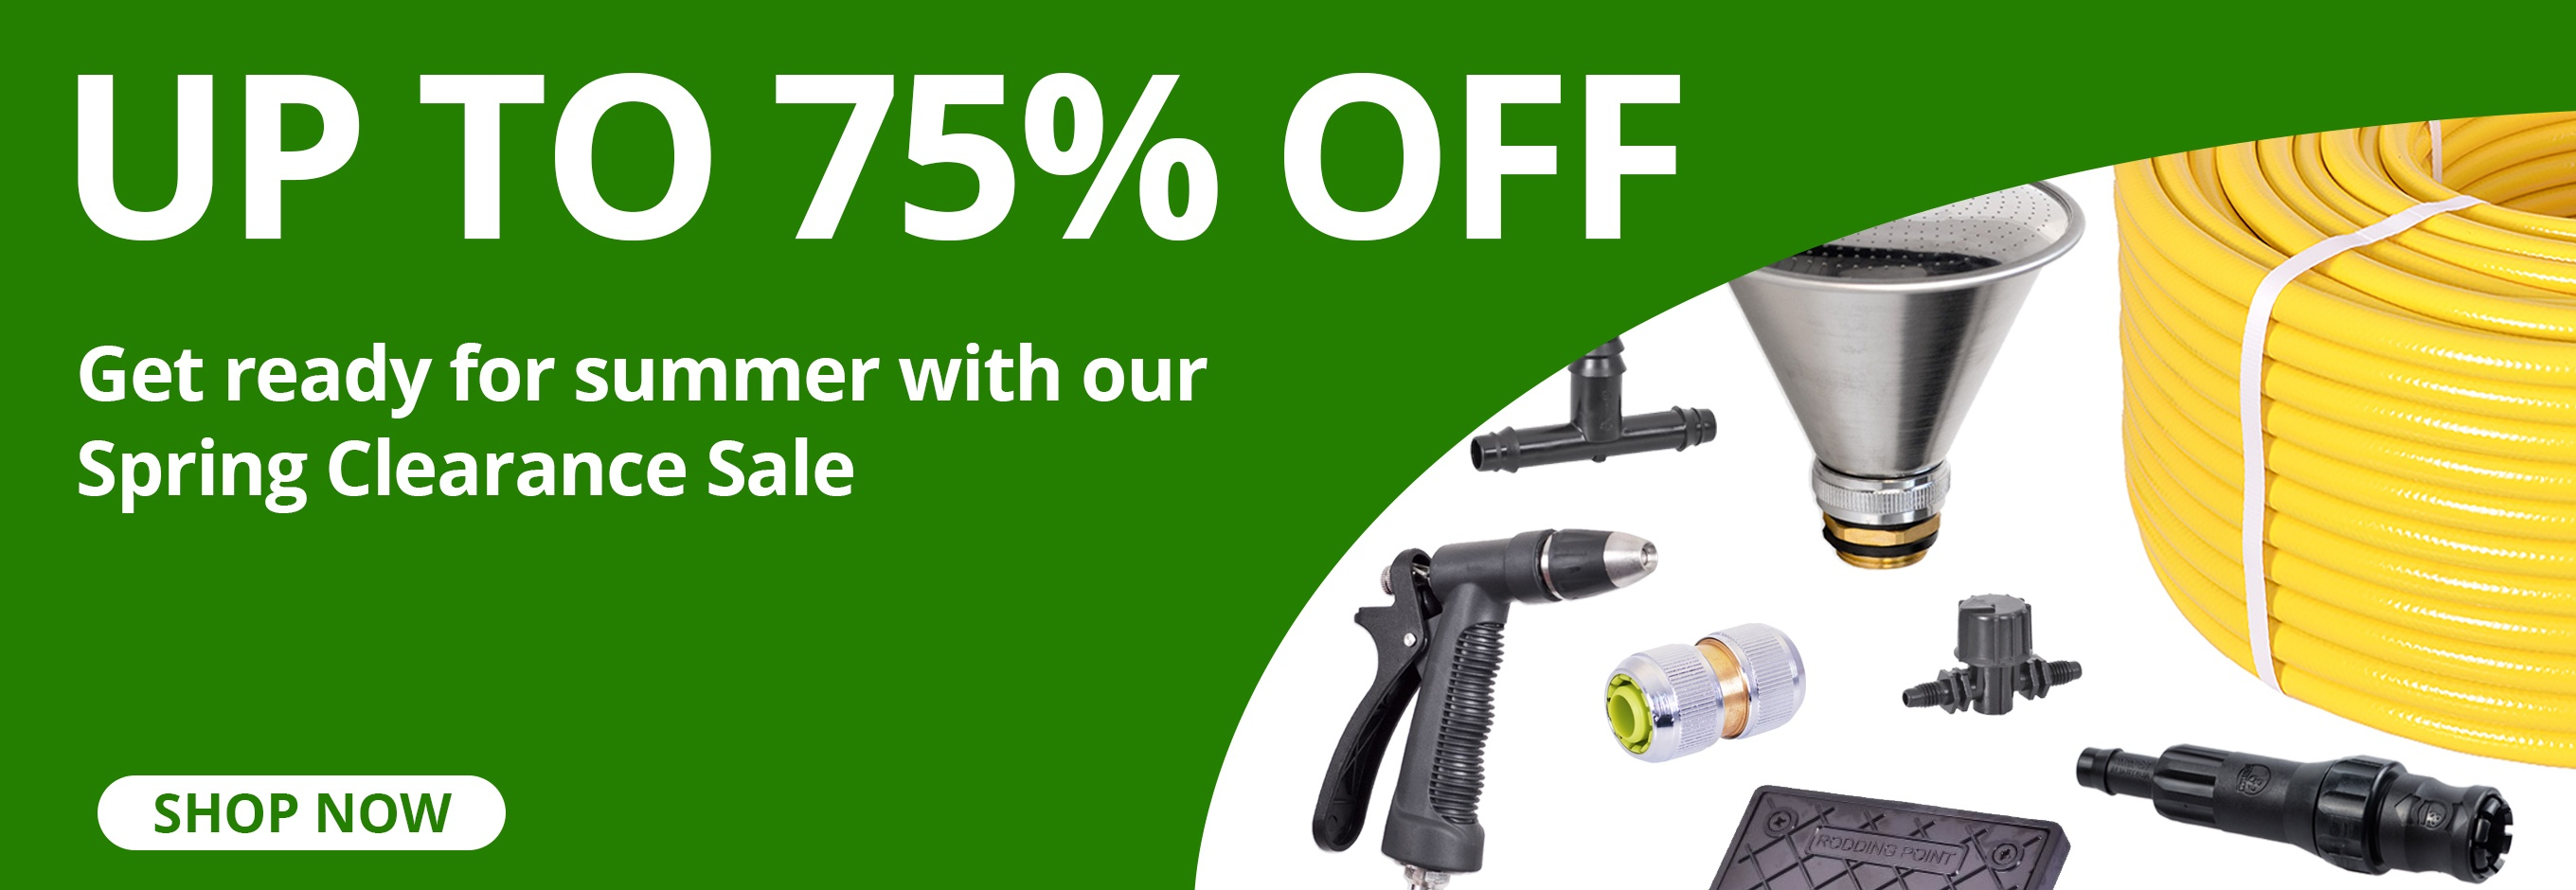 Spring Clearance - Save up to 75%